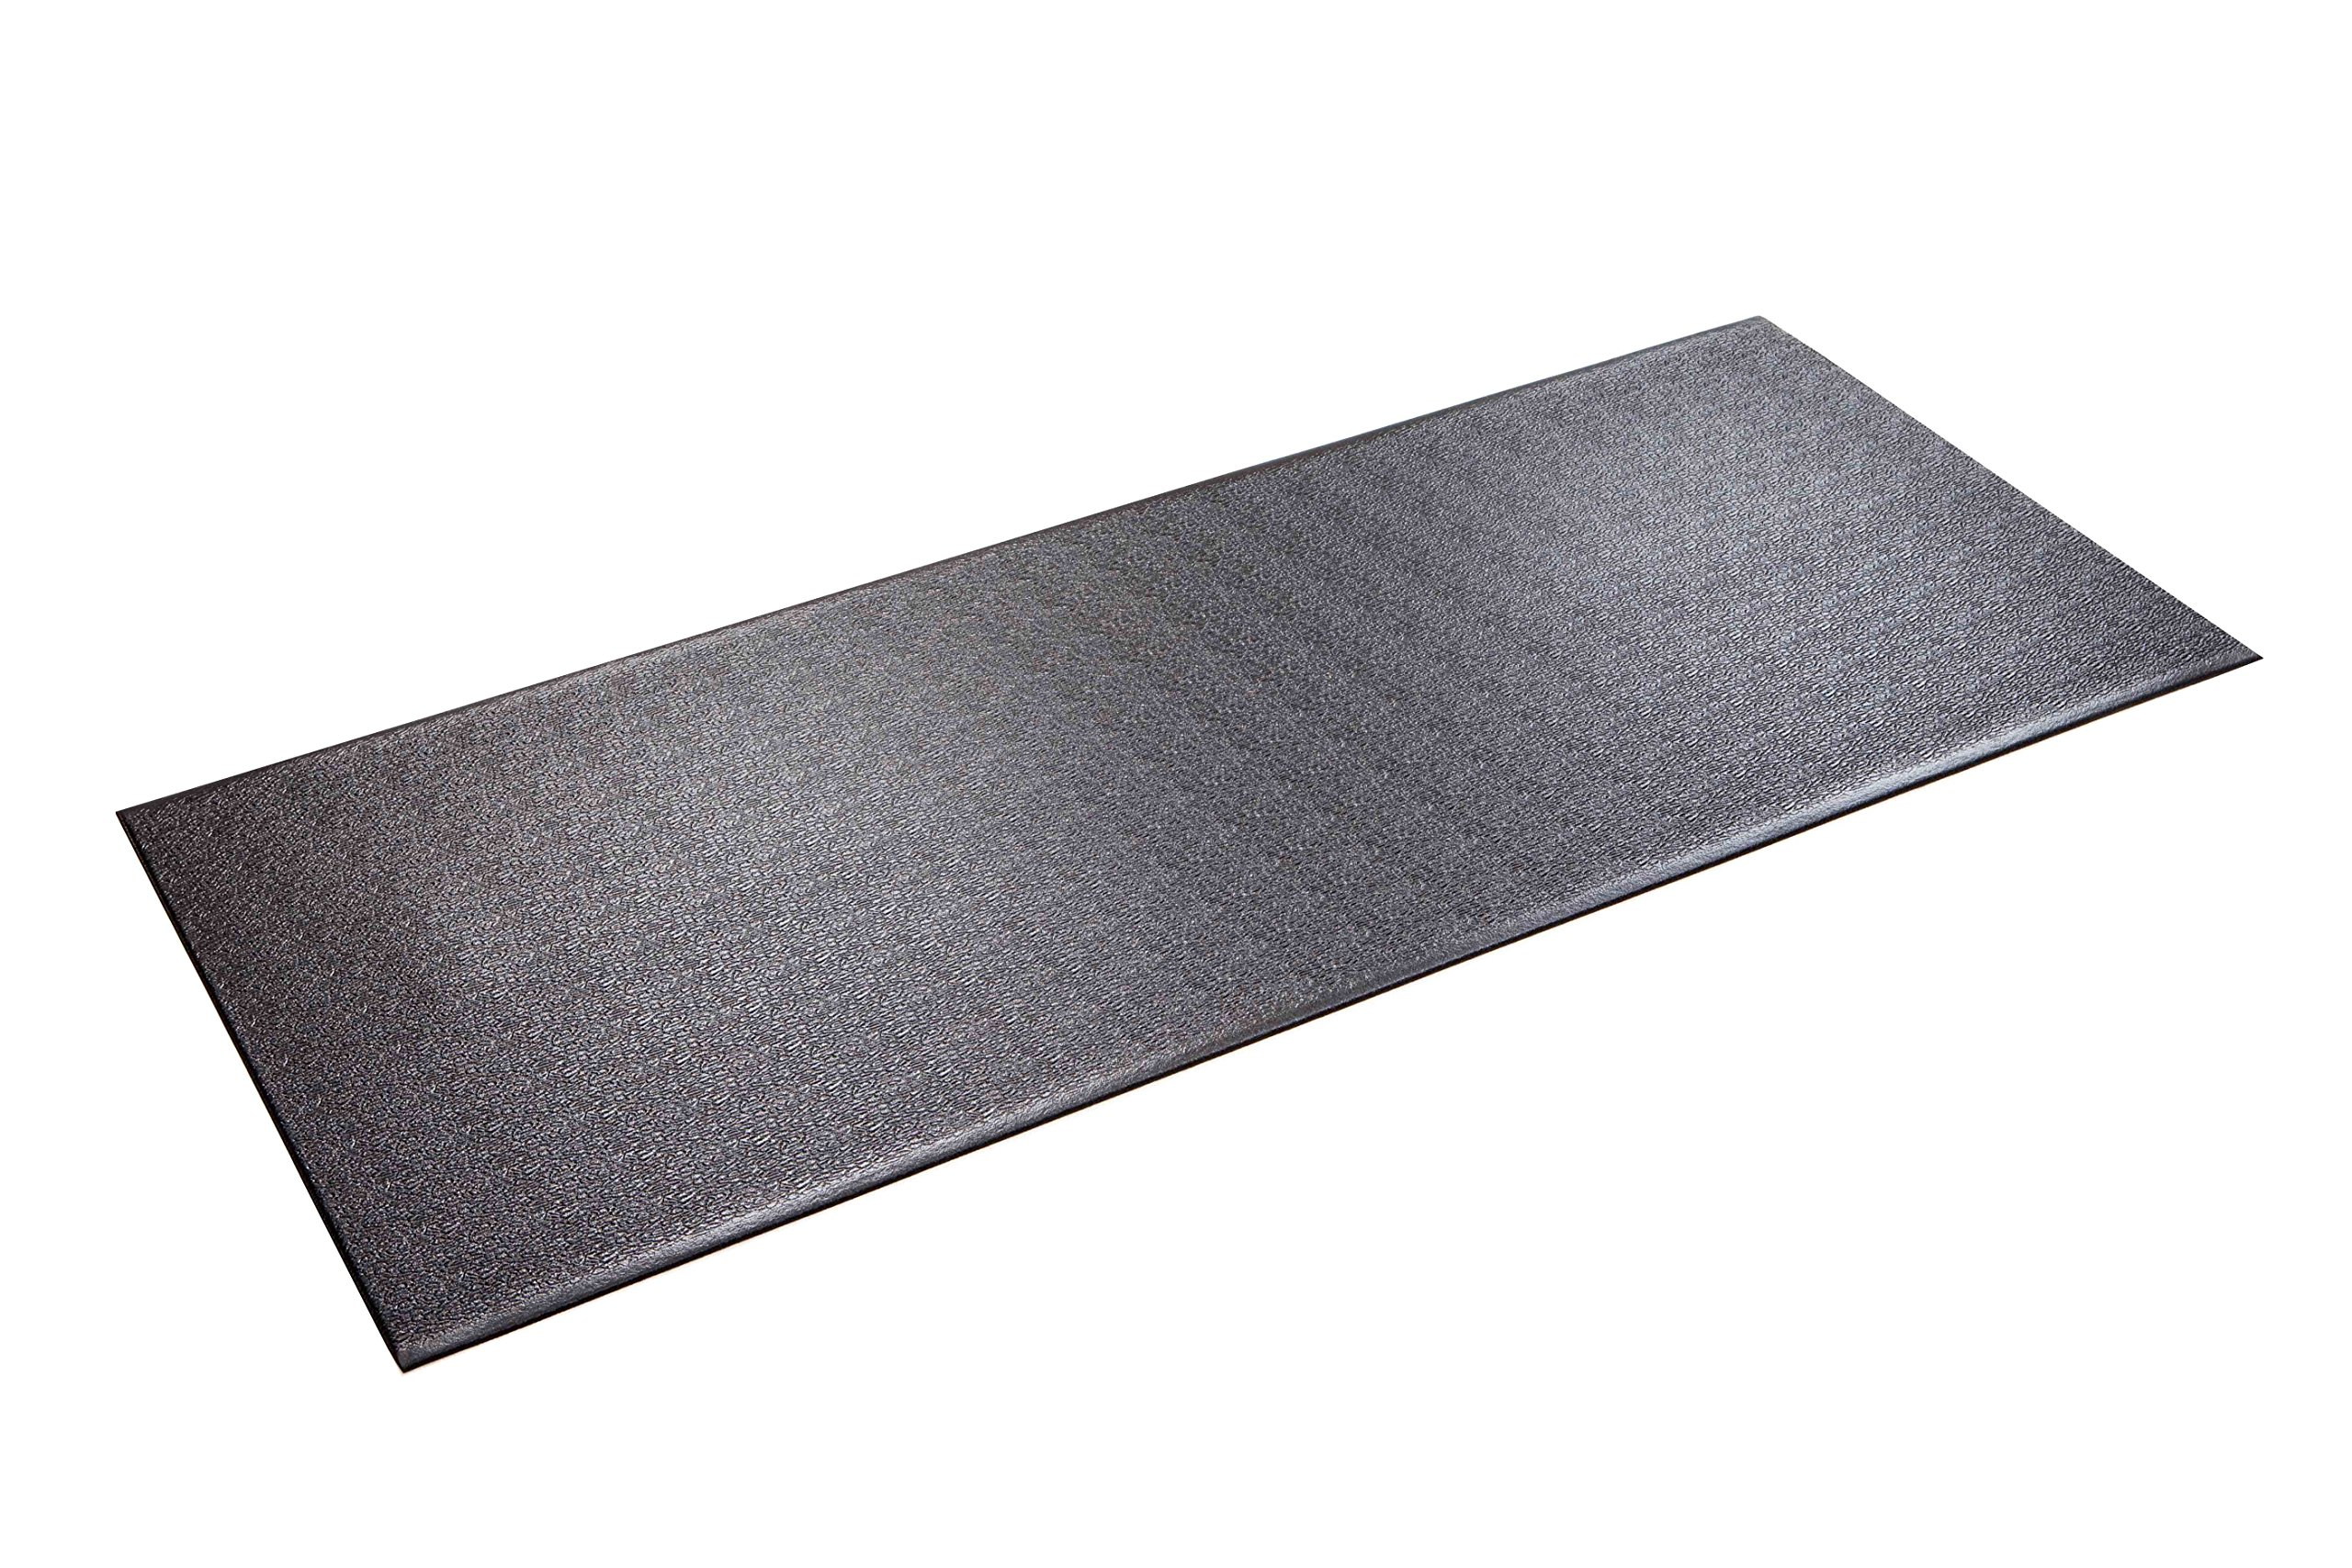 SuperMats Heavy Duty Equipment Mat 30GS Made in U.S.A. for Treadmills Ellipticals Rowing Machines Recumbent Bikes and Exercise Equipment  (2.5-Feet x 6-Feet) (30'' x 72'') (76.20 cm x 182.88 cm) by SuperMats